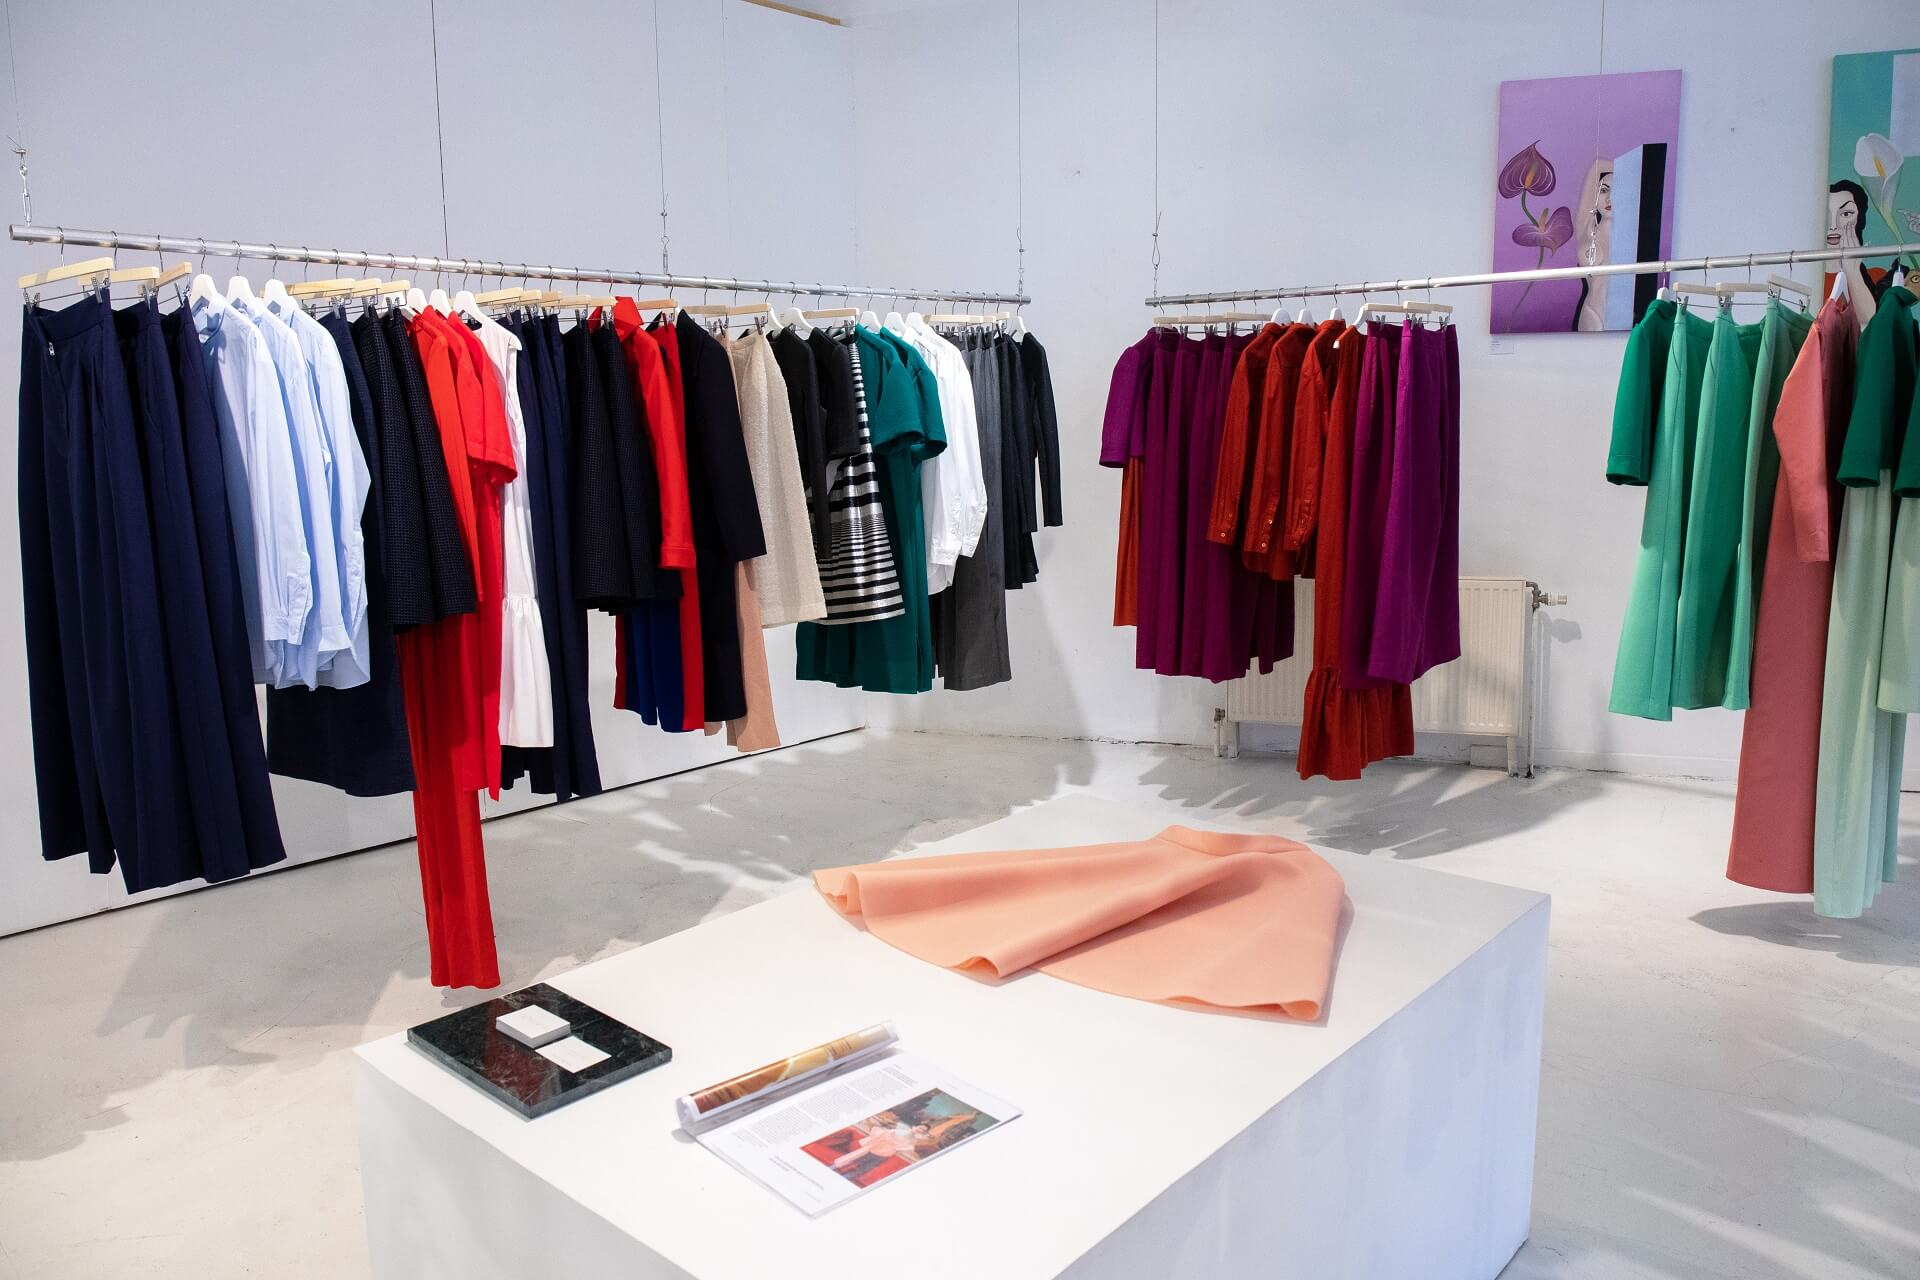 Boutique rack with clothes